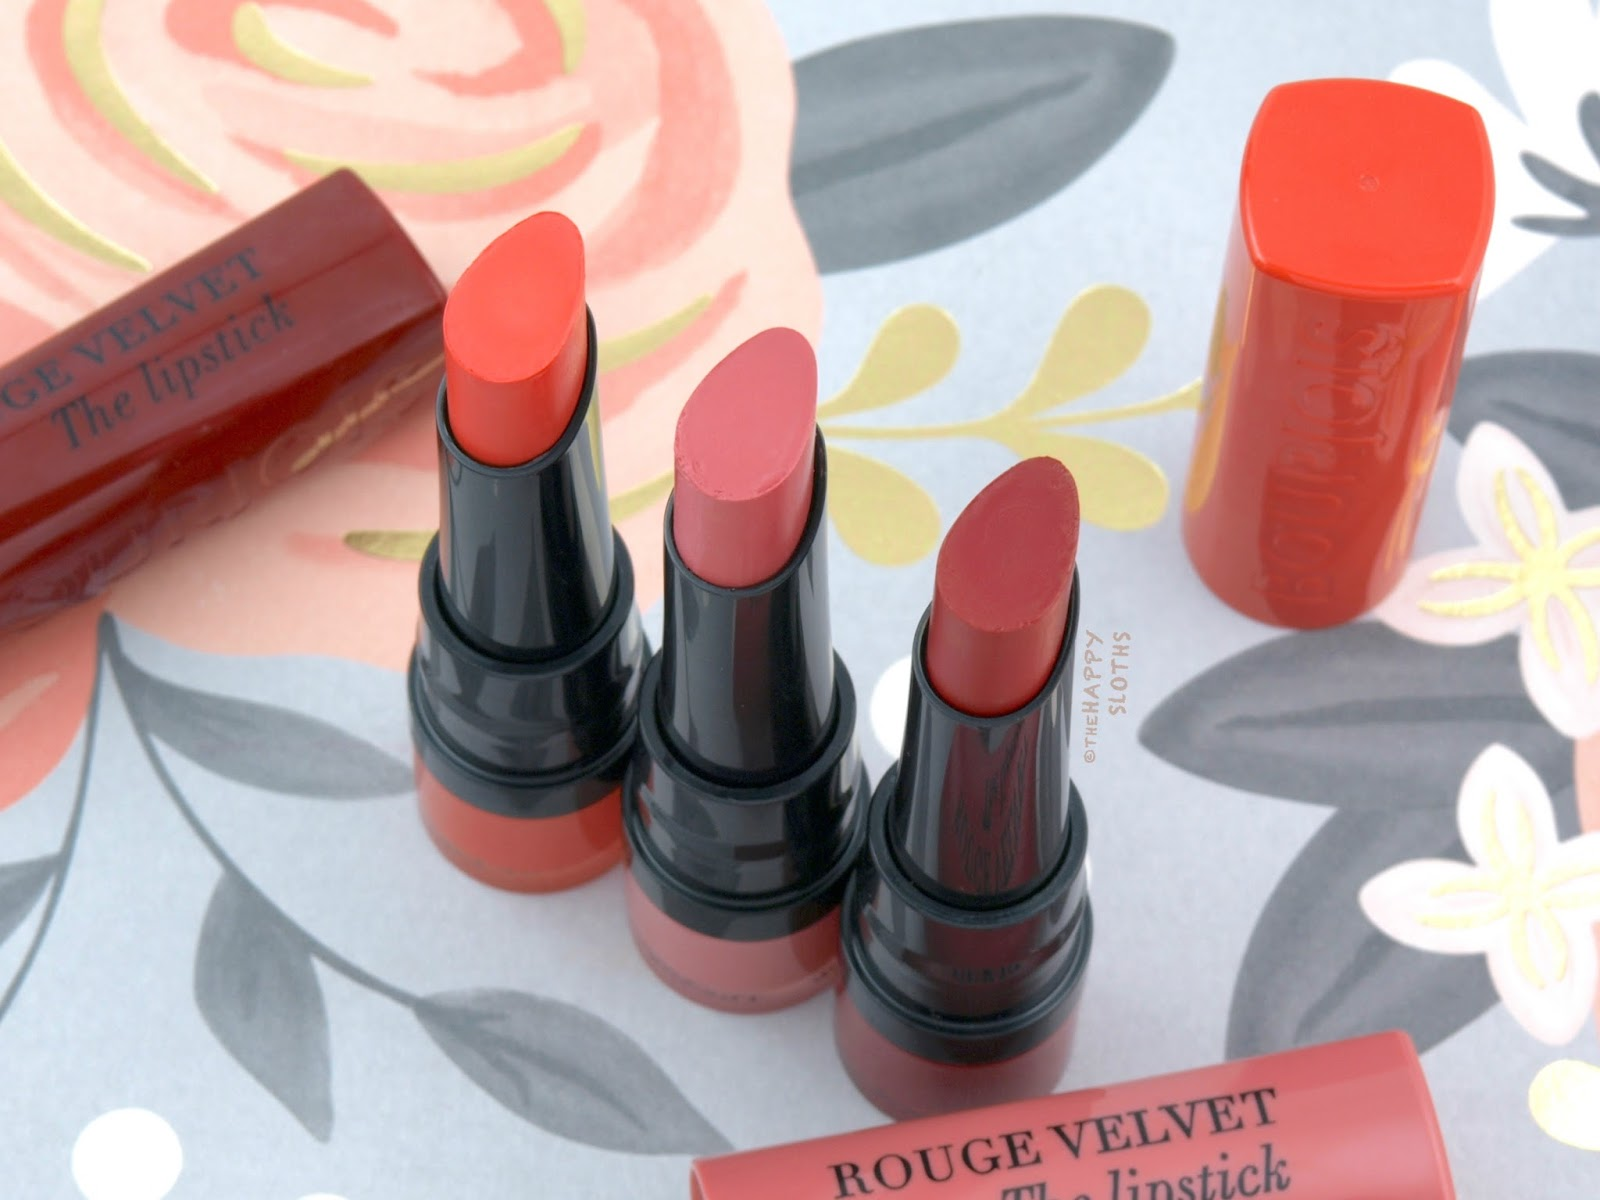 Bourjois | Rouge Velvet The Lipstick: Review and Swatches